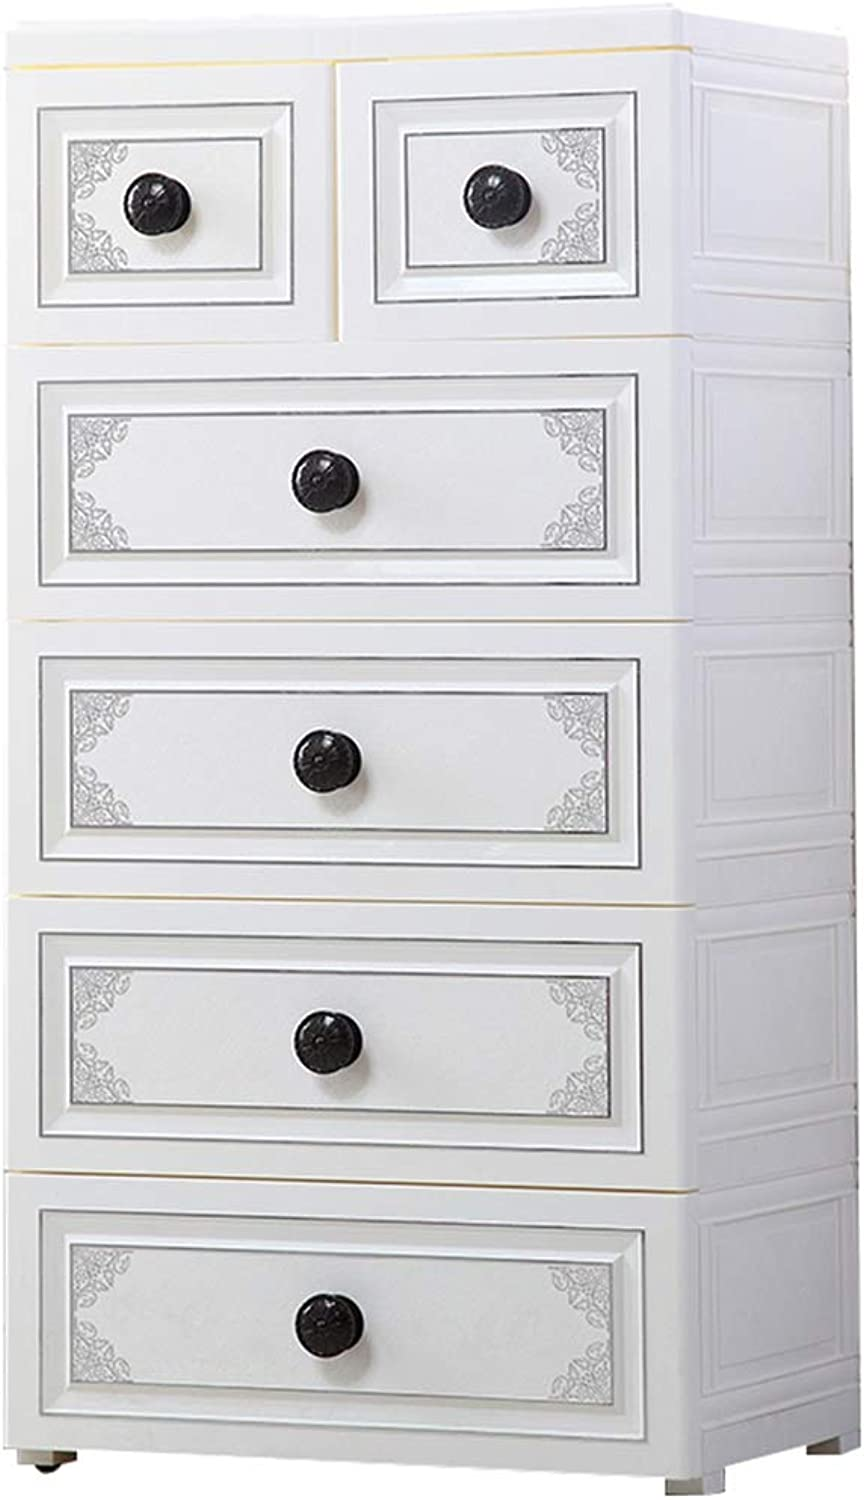 Zzg2 Plastic Chest Of Of Of Drawers, Multifunction Bedroom